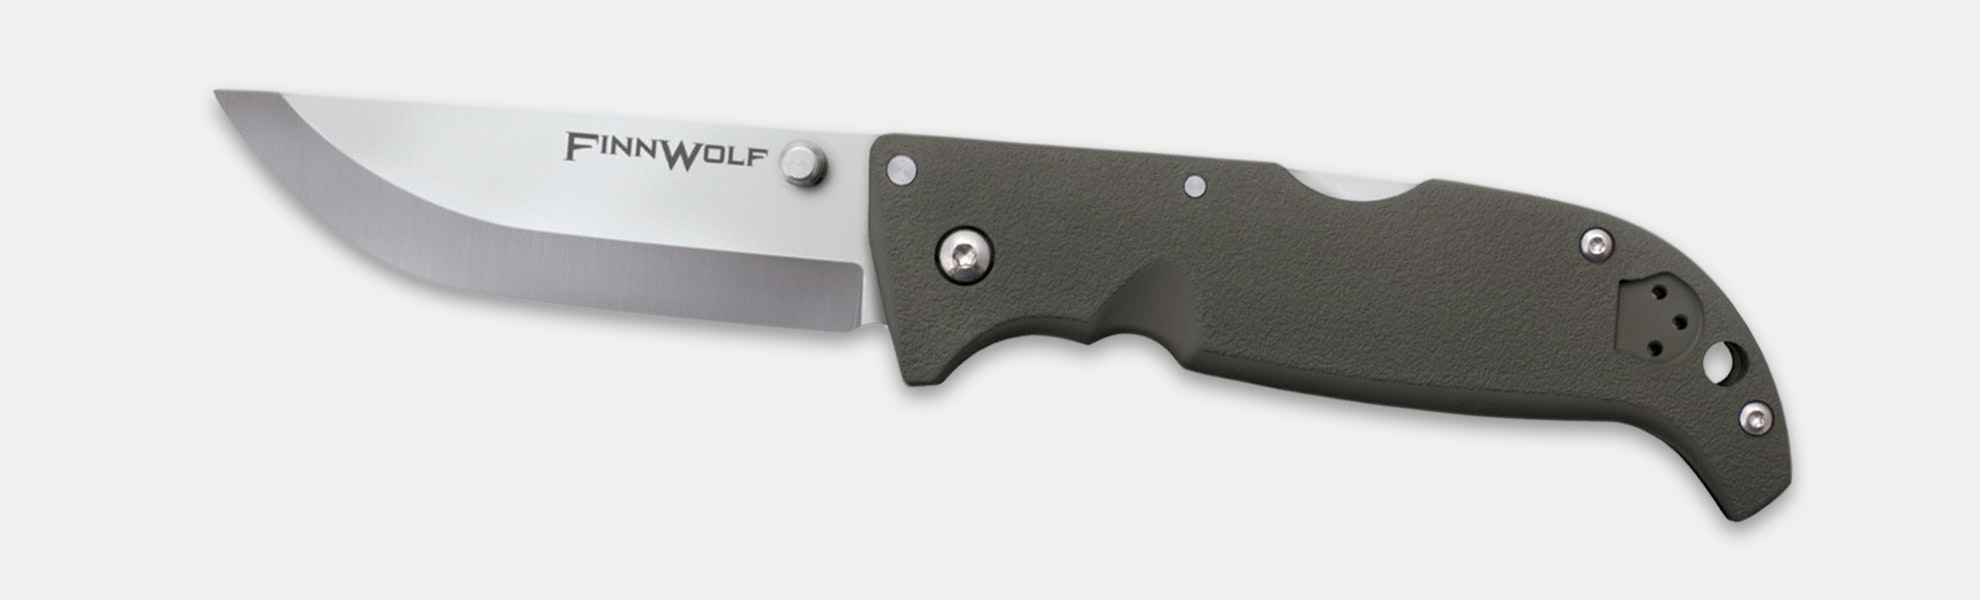 Cold Steel Finn Wolf Lockback Knife